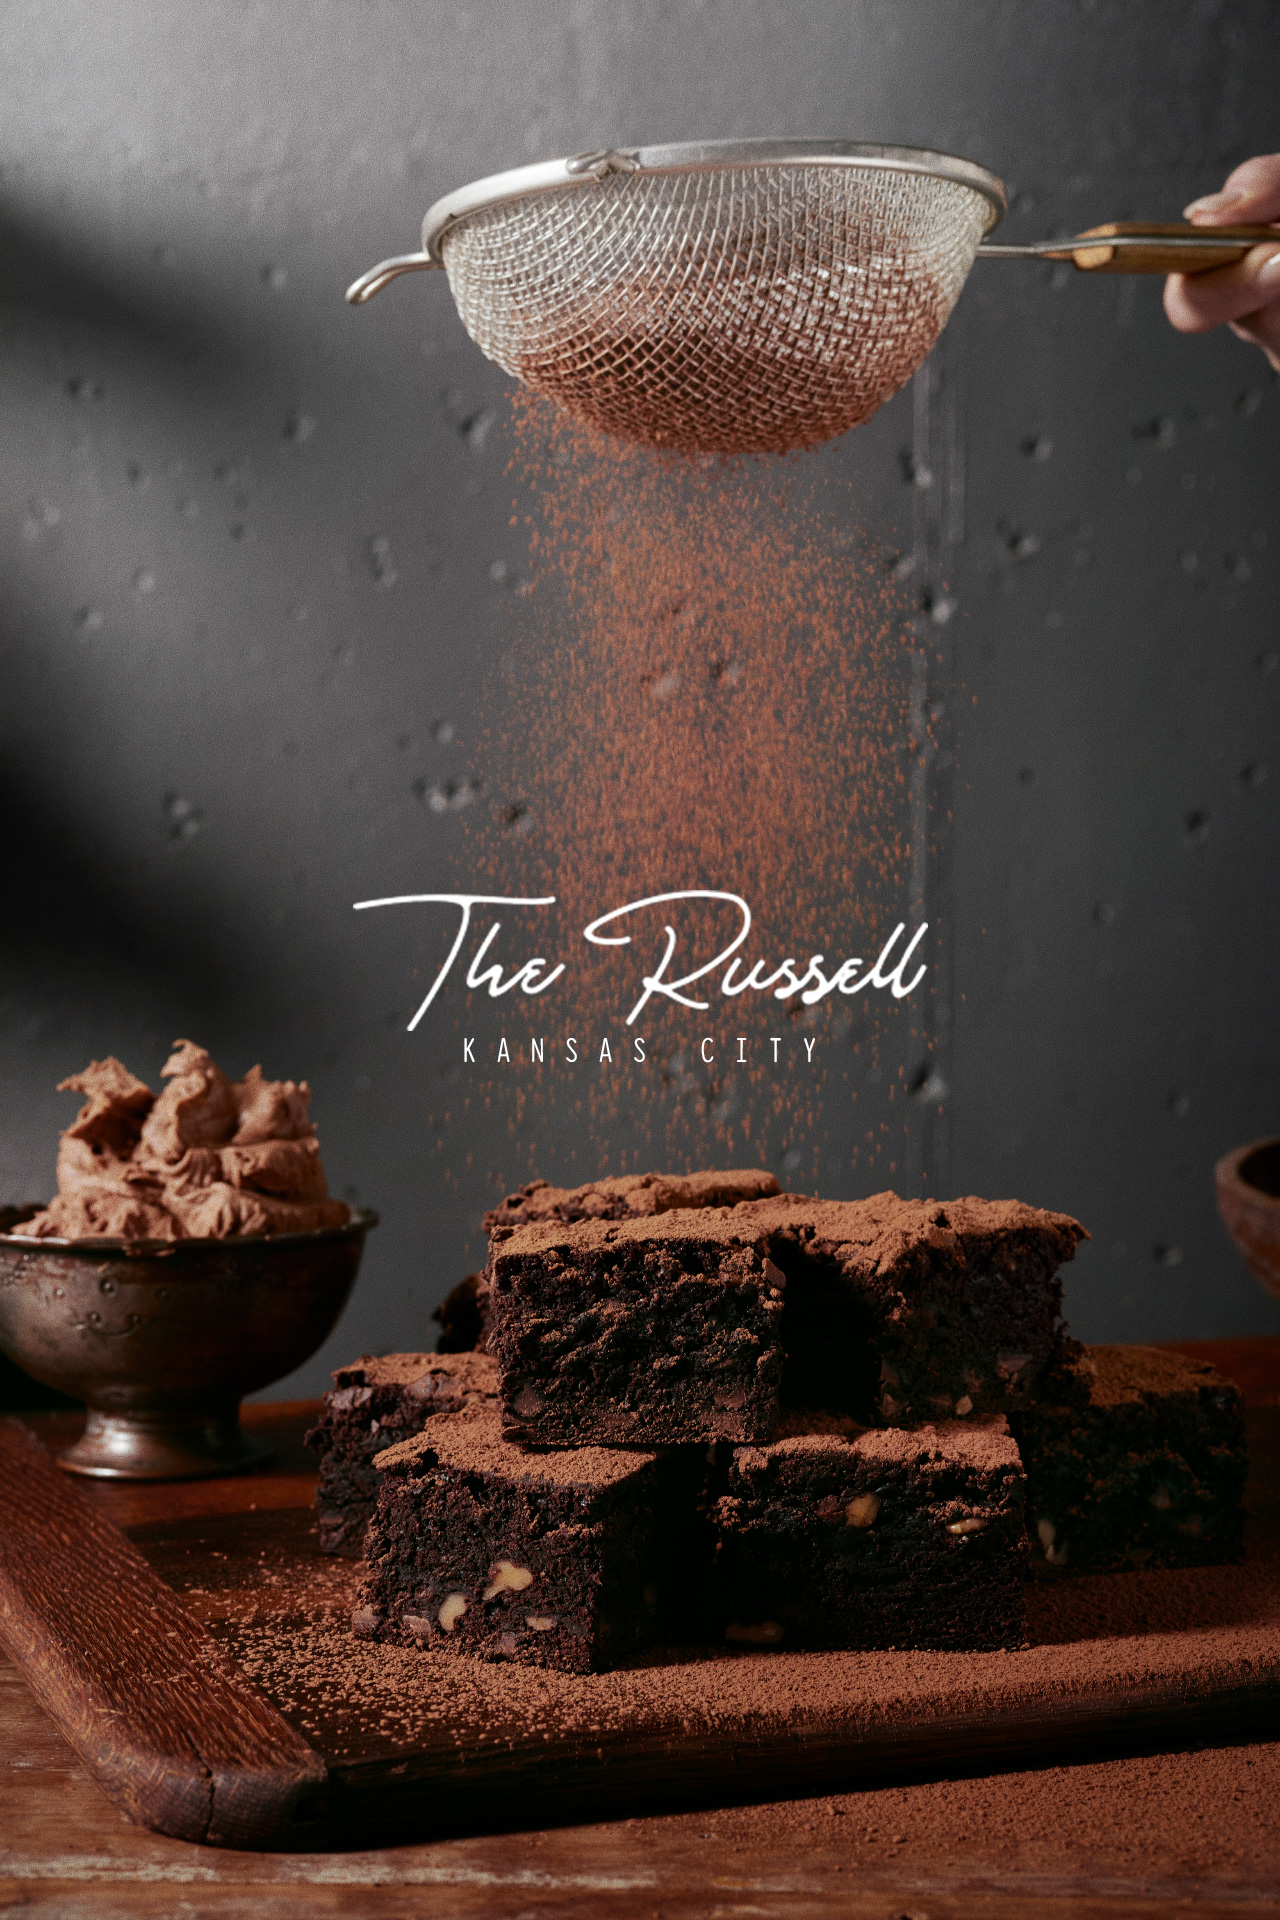 TheRussell_KansasCity_FoodPhotographer.jpg